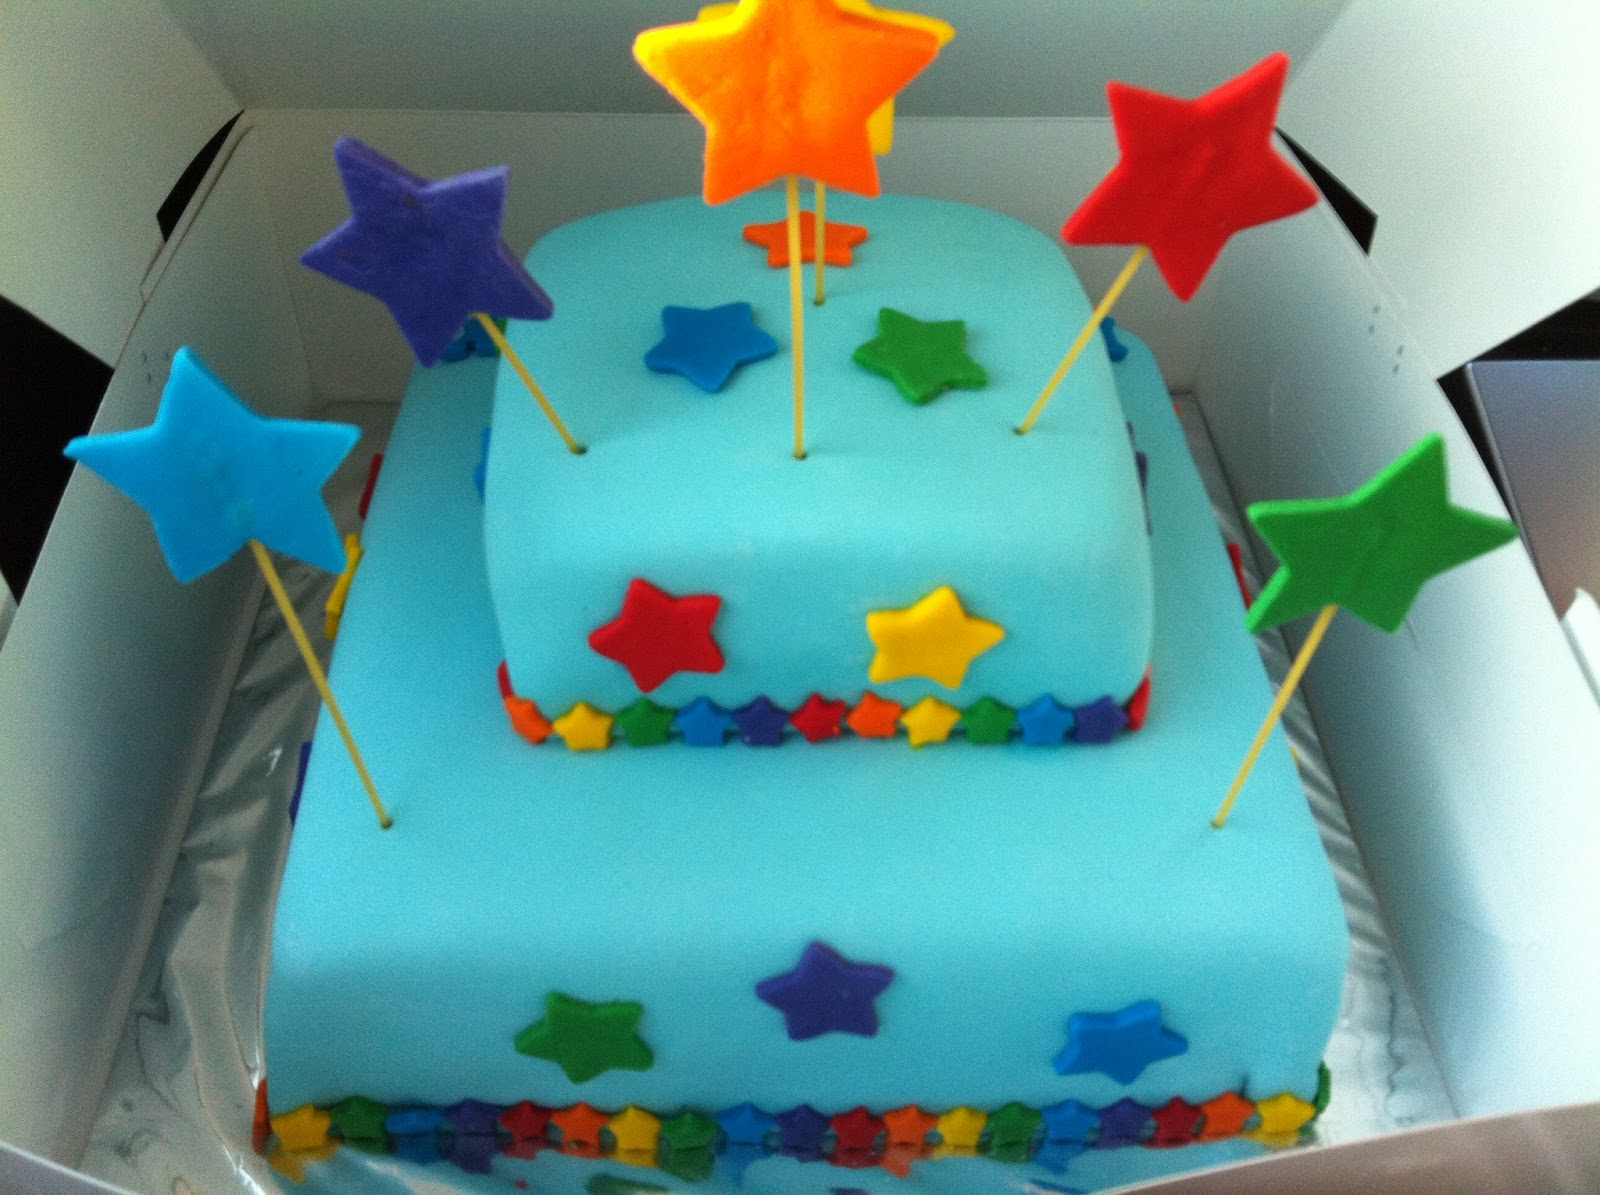 Baking Bees: Starry 1st Birthday Cake for Nathanael